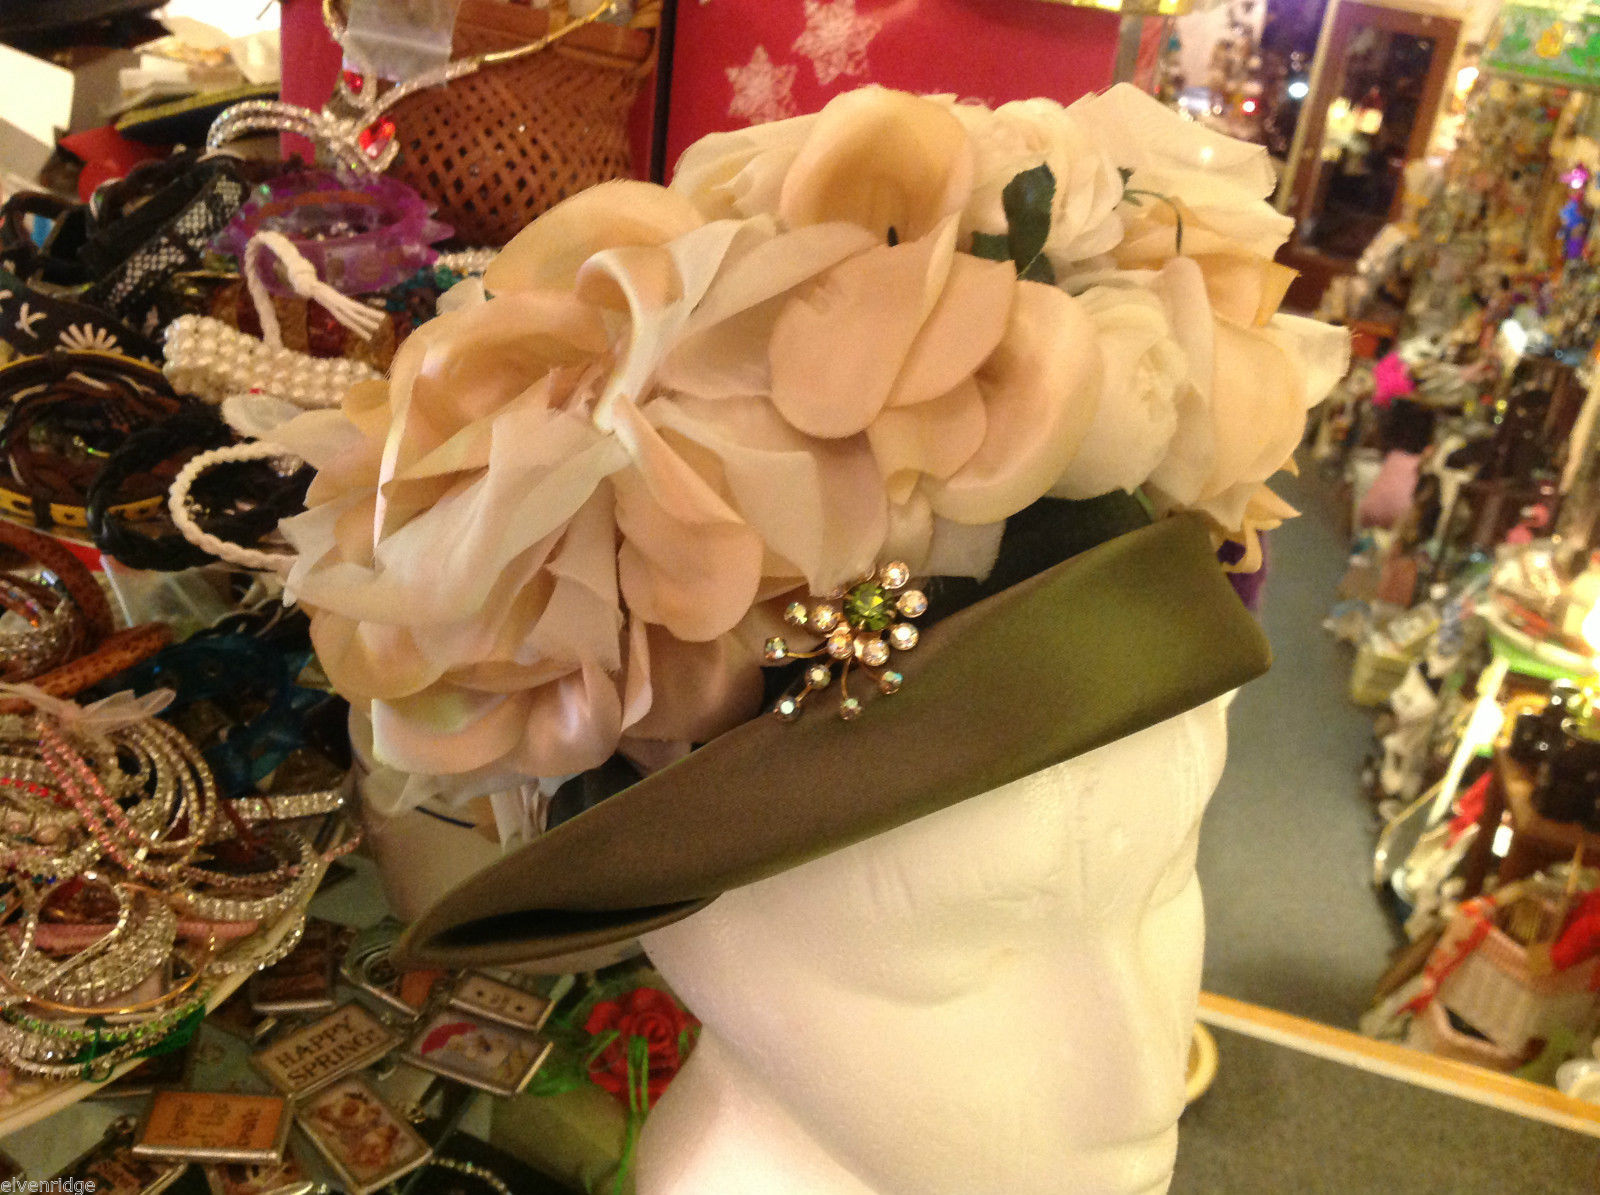 Vintage green flowery Easter bonnet with stunning rhinestone decorative pin